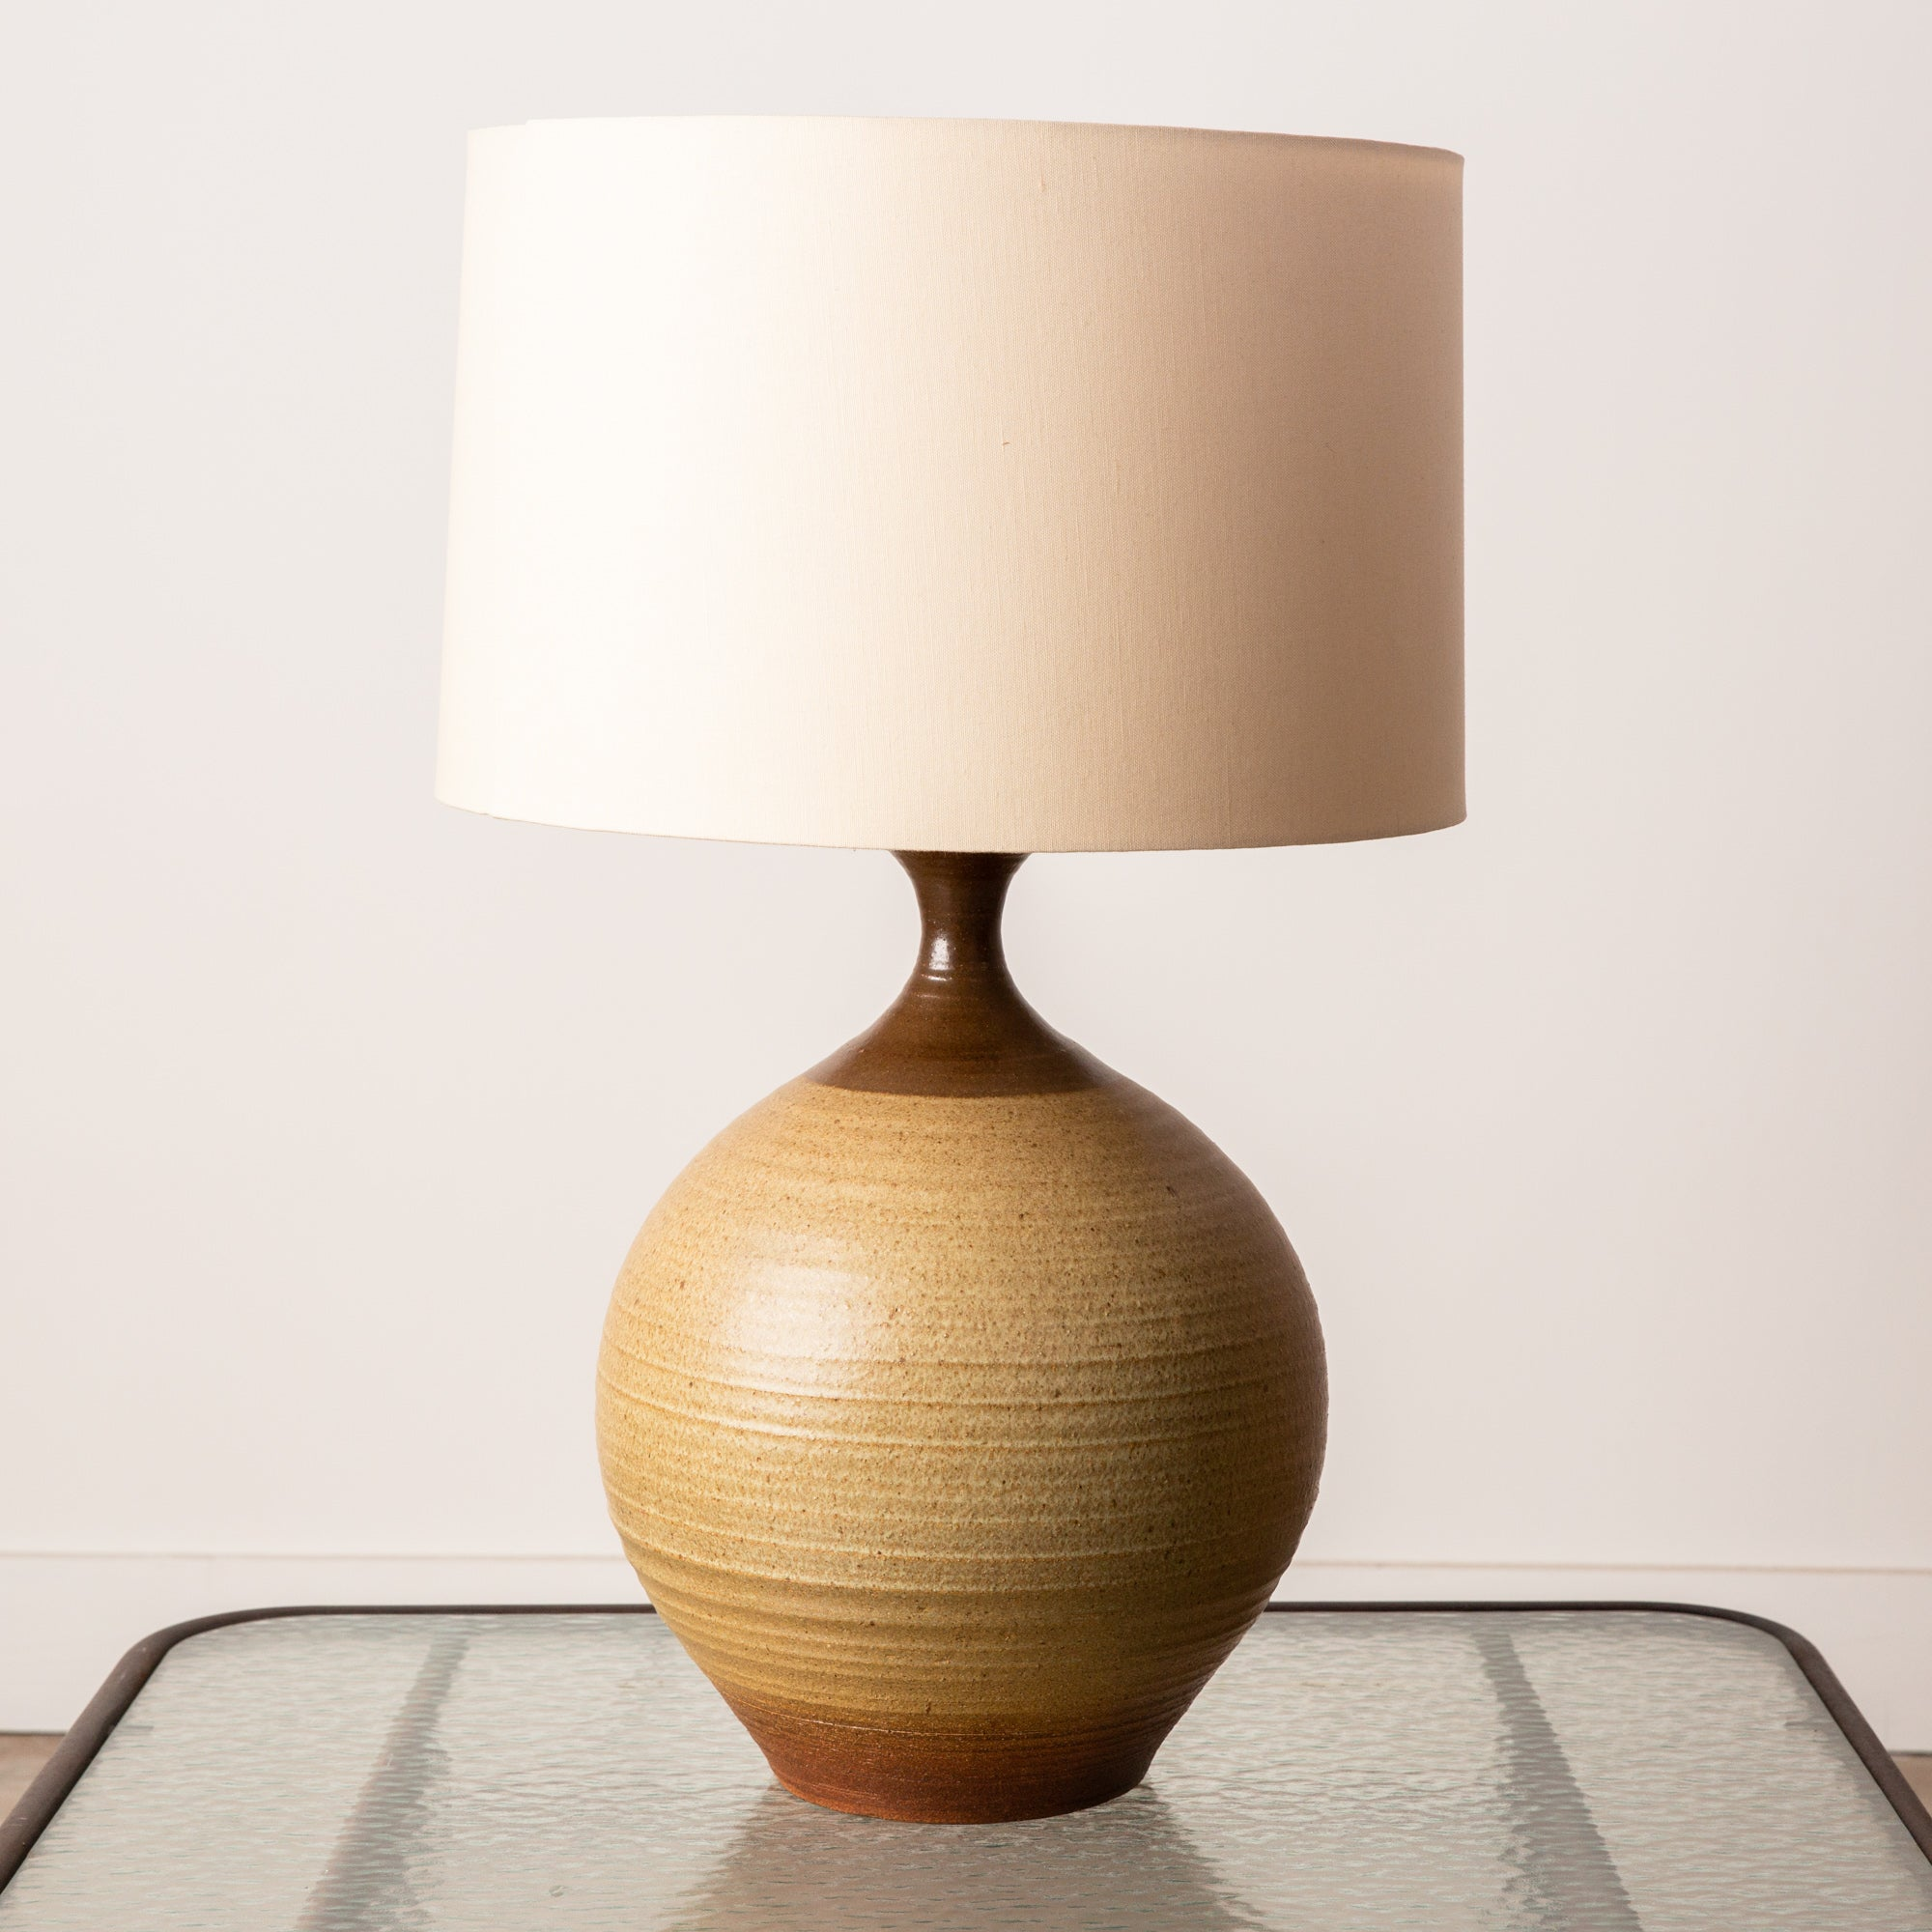 Bob Kinzie for Affiliated Craftsmen Stoneware Table Lamp